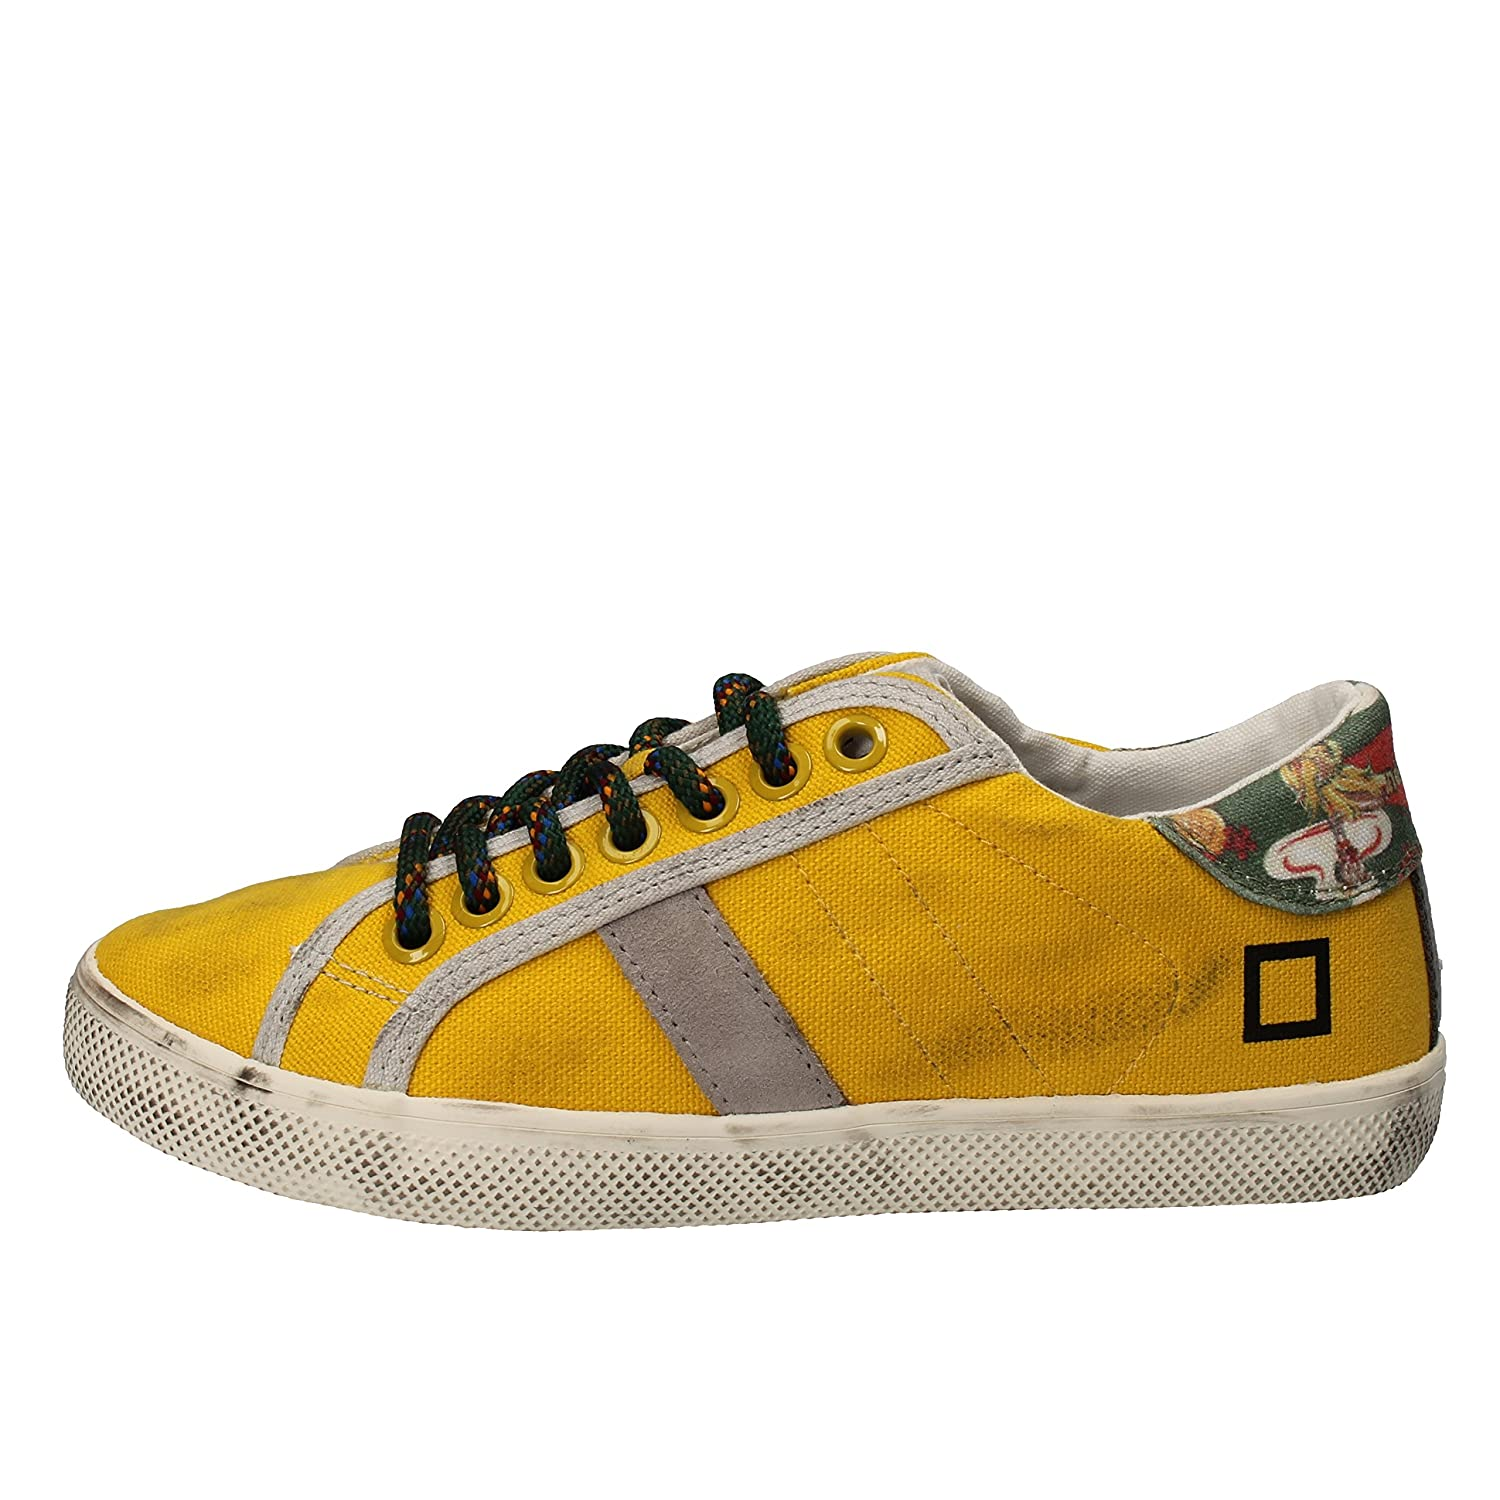 DATE D.A.T.E. Fashion-Sneakers Baby-Girls Yellow